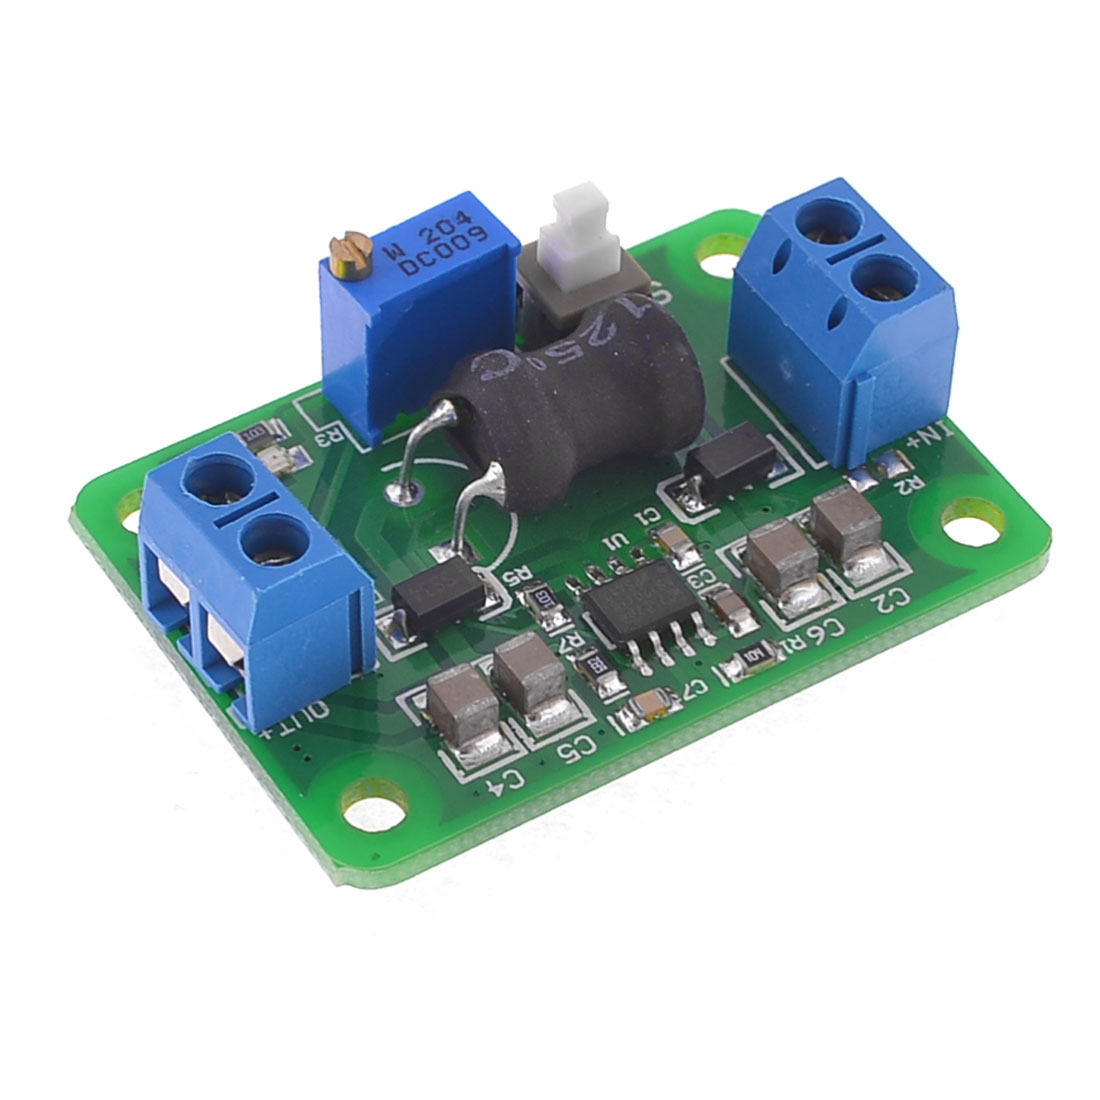 DC 5-24V to DC 0.93-18V 2.5A Adjustable Voltage Step Down Module